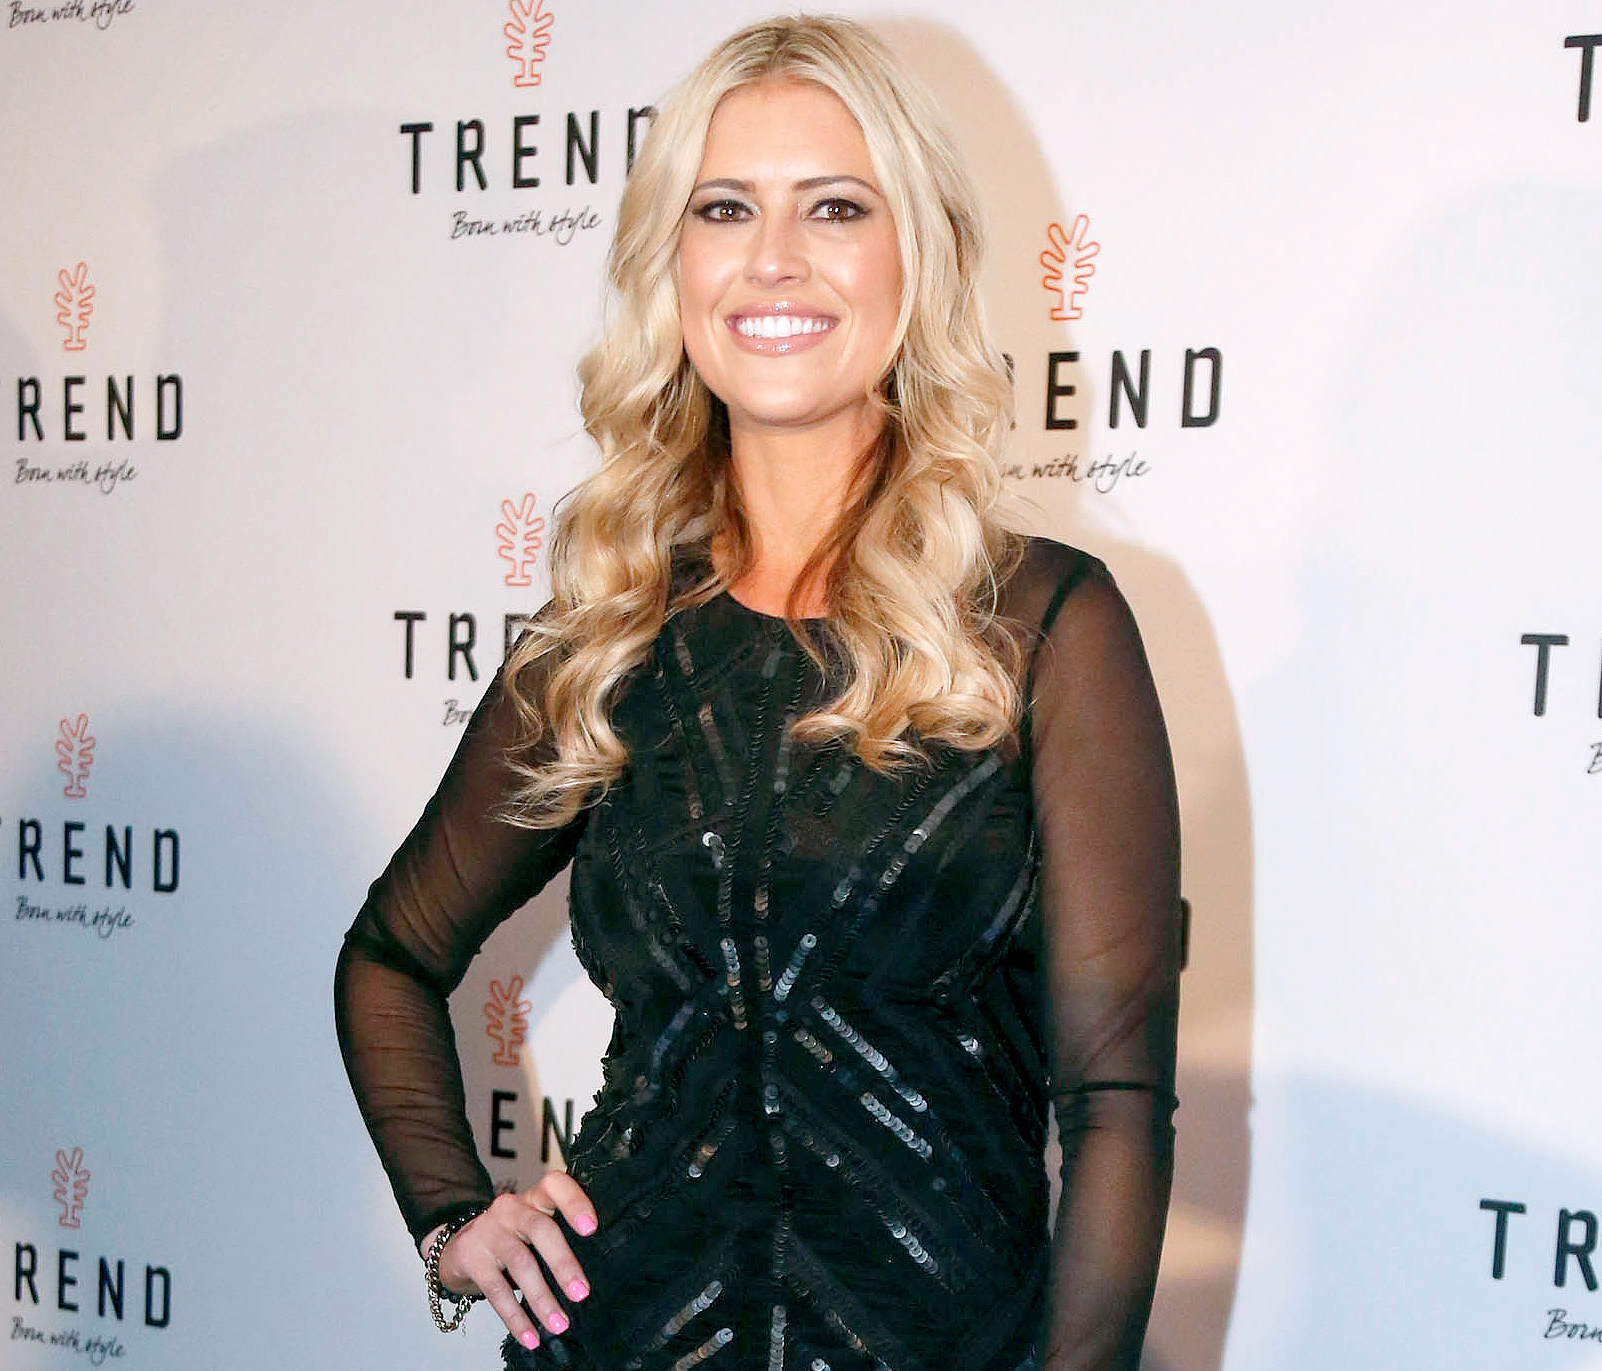 Christina El Moussa attends the TREND Group And Granite Transformations Global Rebranding Launch Event at The Temple House in March 2016.